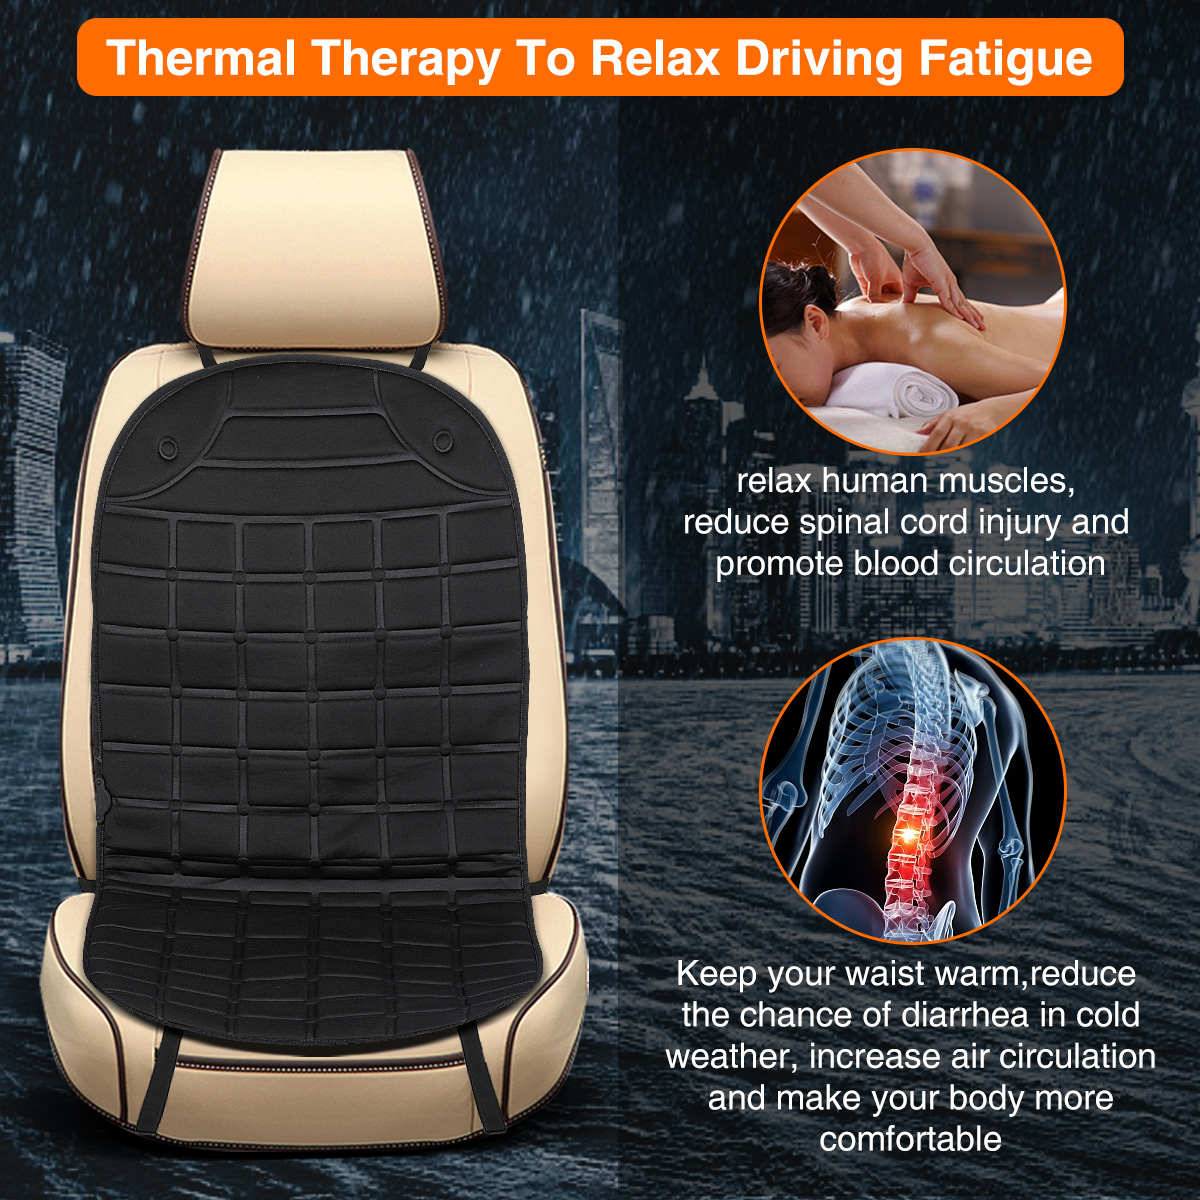 Heated Car Seat 12V Universal Heated Car Seat Covers Car Front Seat Hot Heated Pad Heated Car Seat Pad Cushion Winter Warmer Cover with Intelligent Temperature Controller and Timing,Black 1 Pack